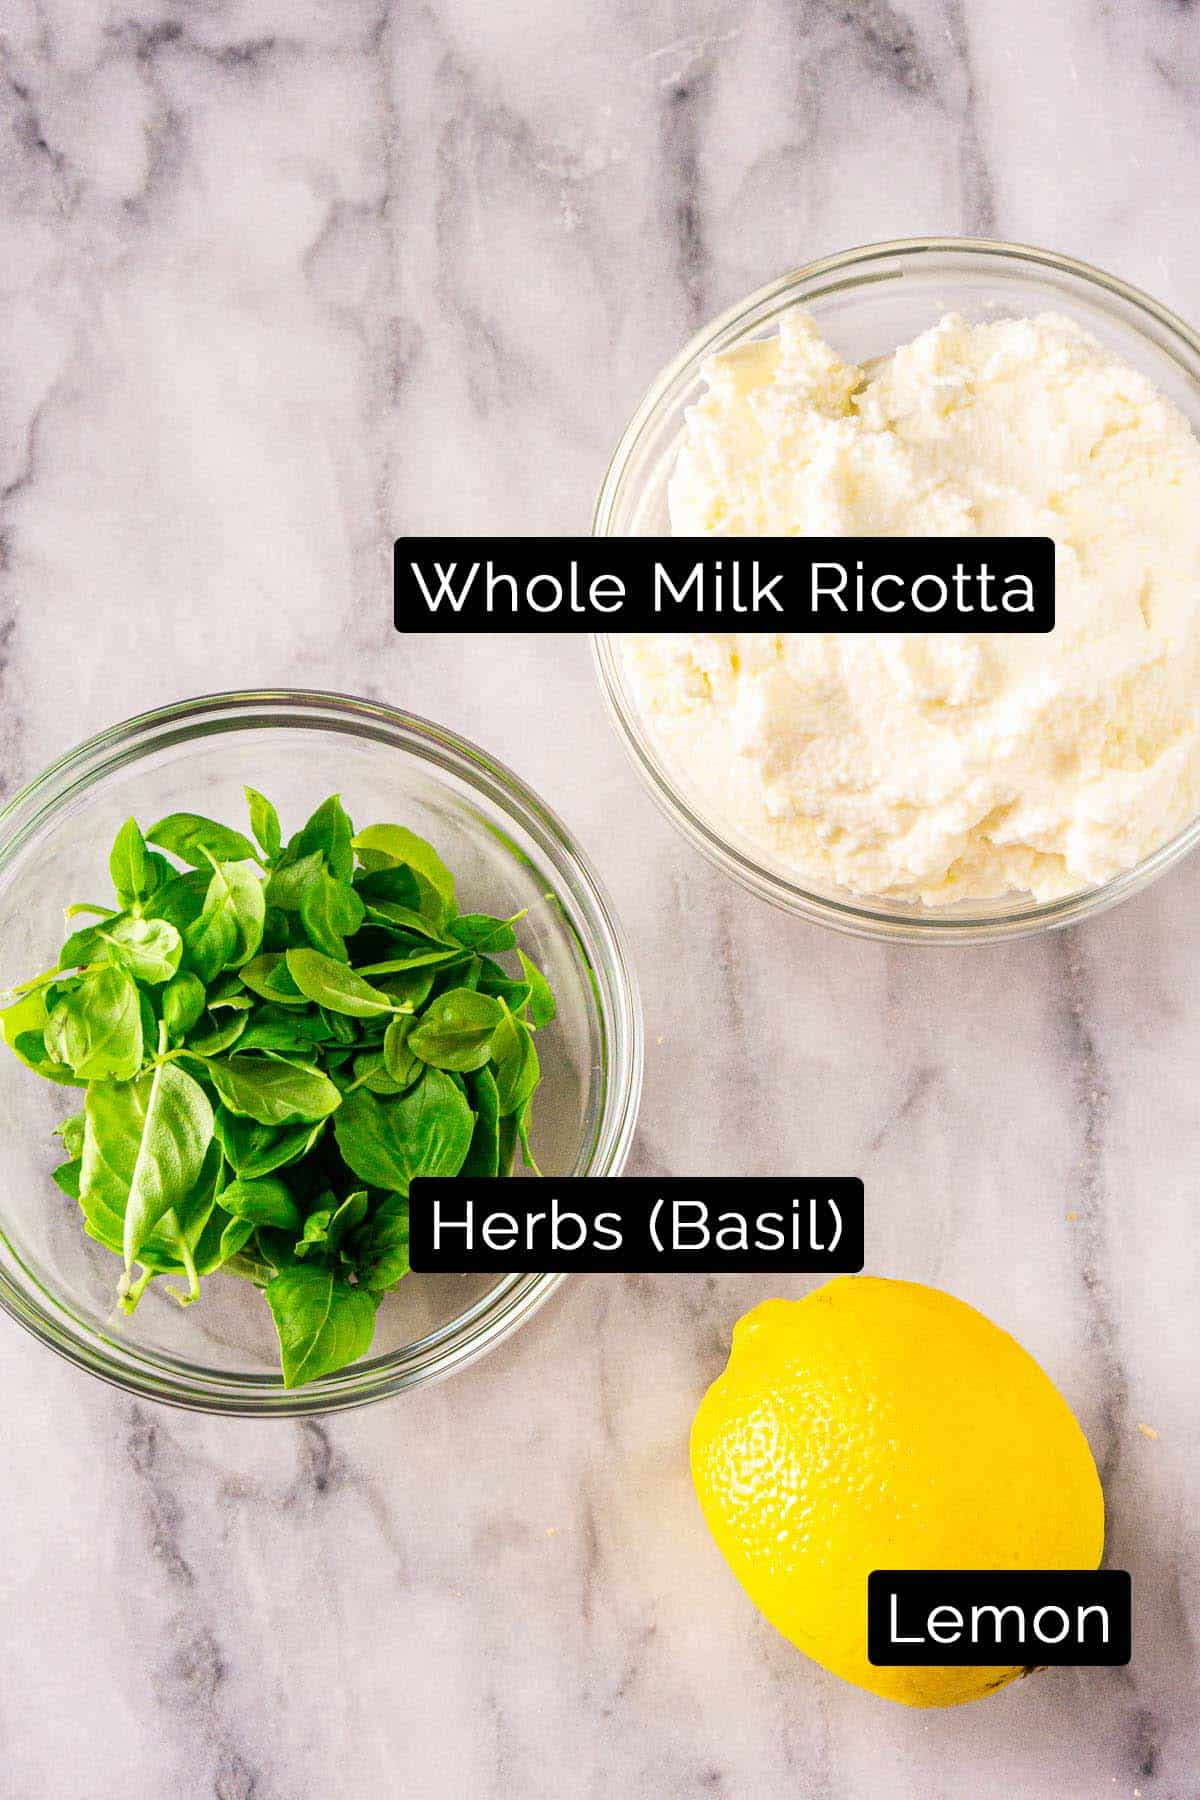 The whipped ricotta ingredients with black and white labels on a marble board.